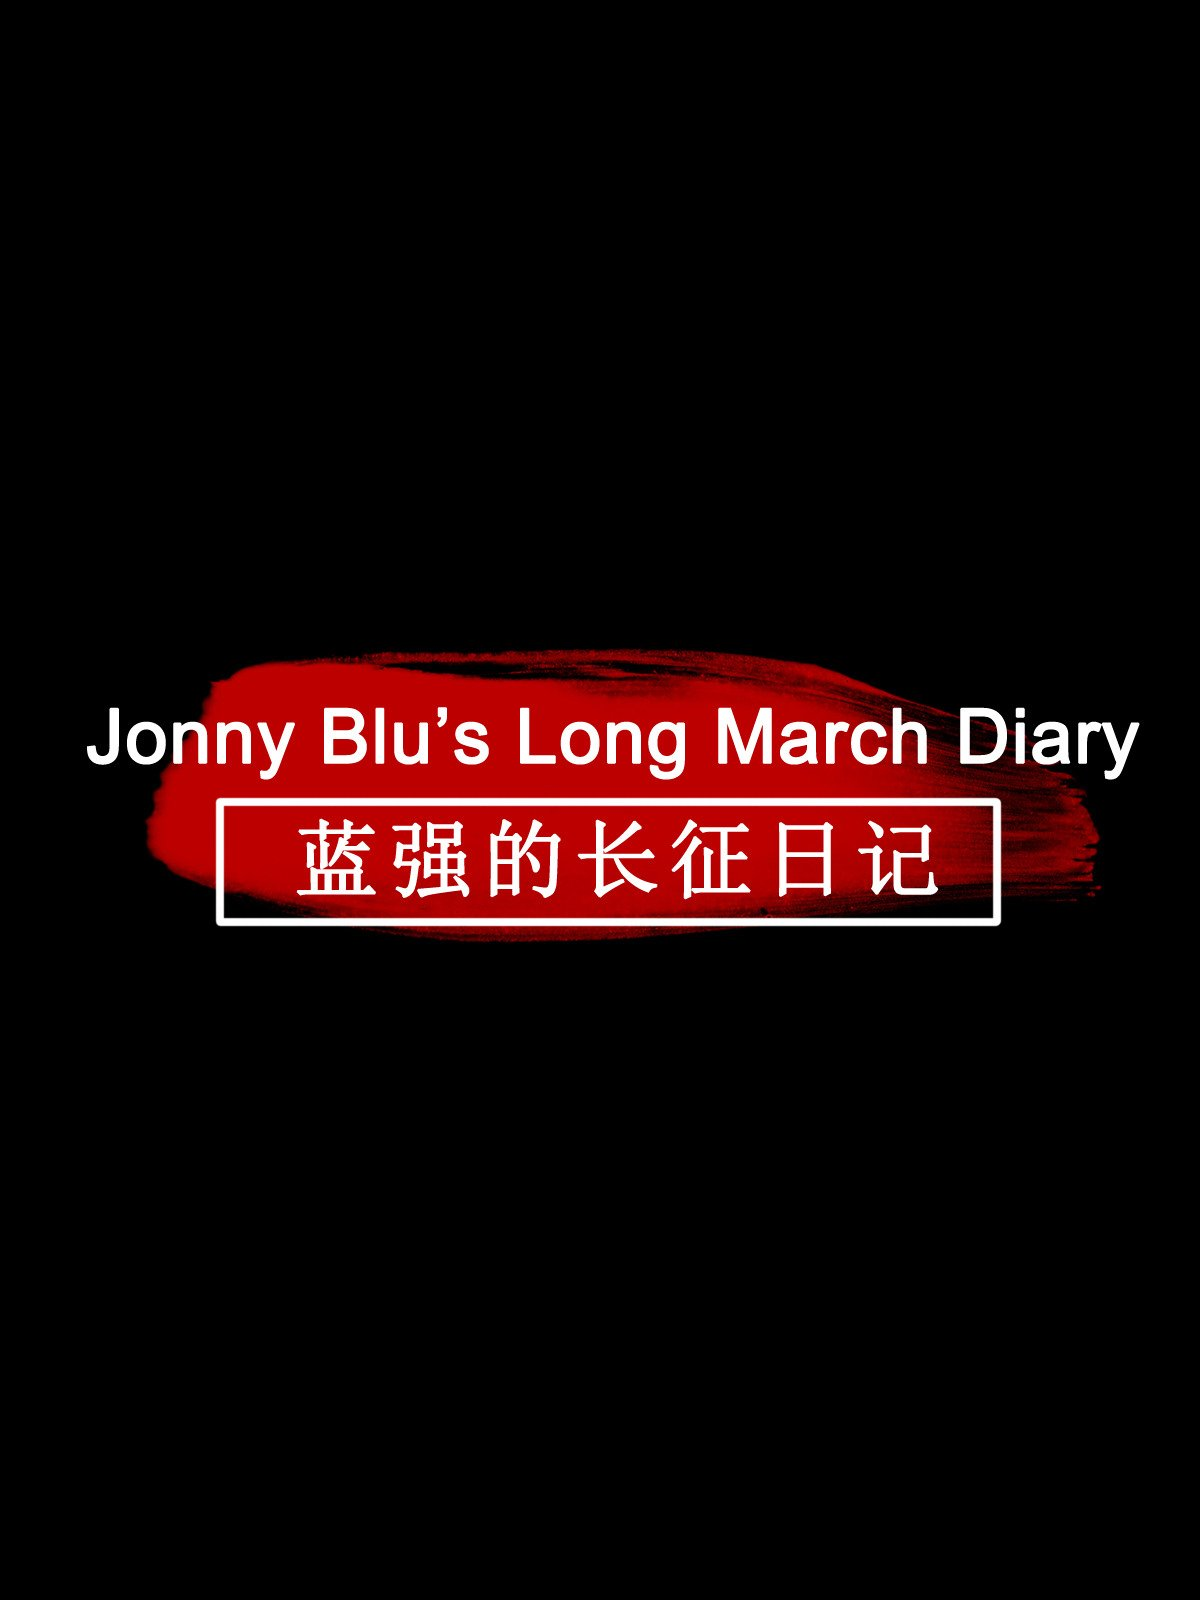 Jonny Blu's Long March Diary